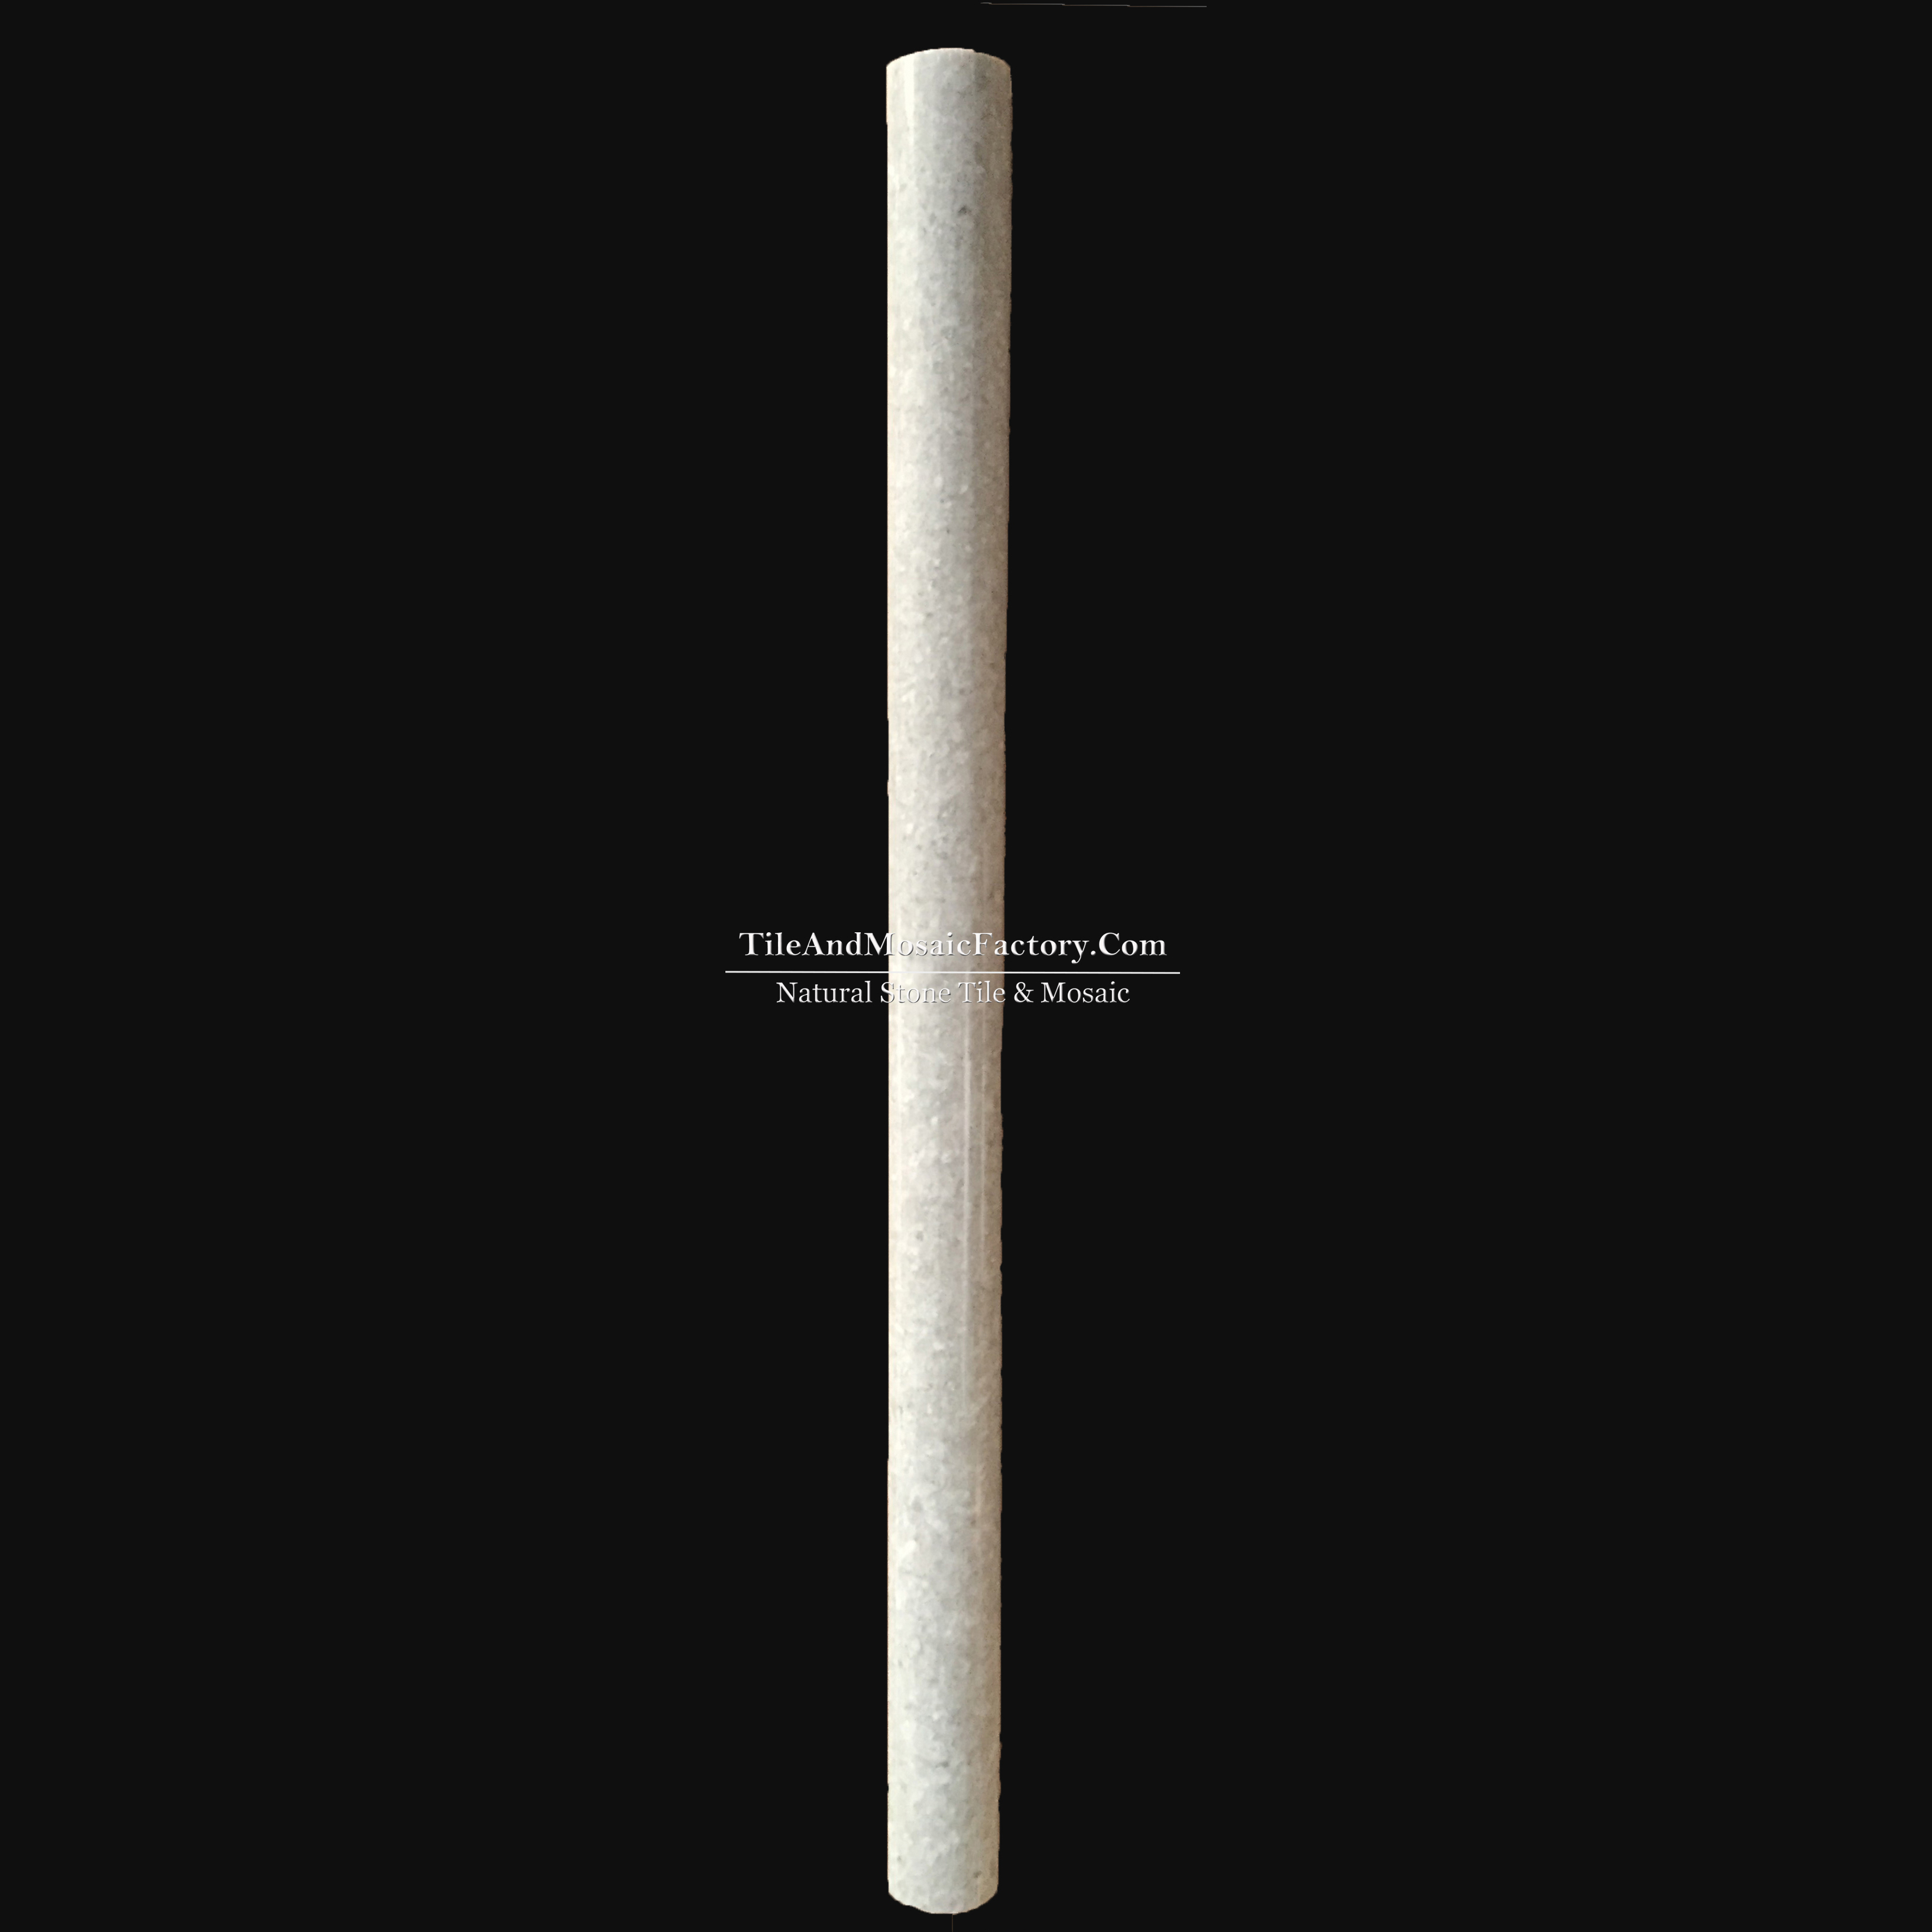 Starlight  Cane 1x12 Molding polished Grey color Limestone Border